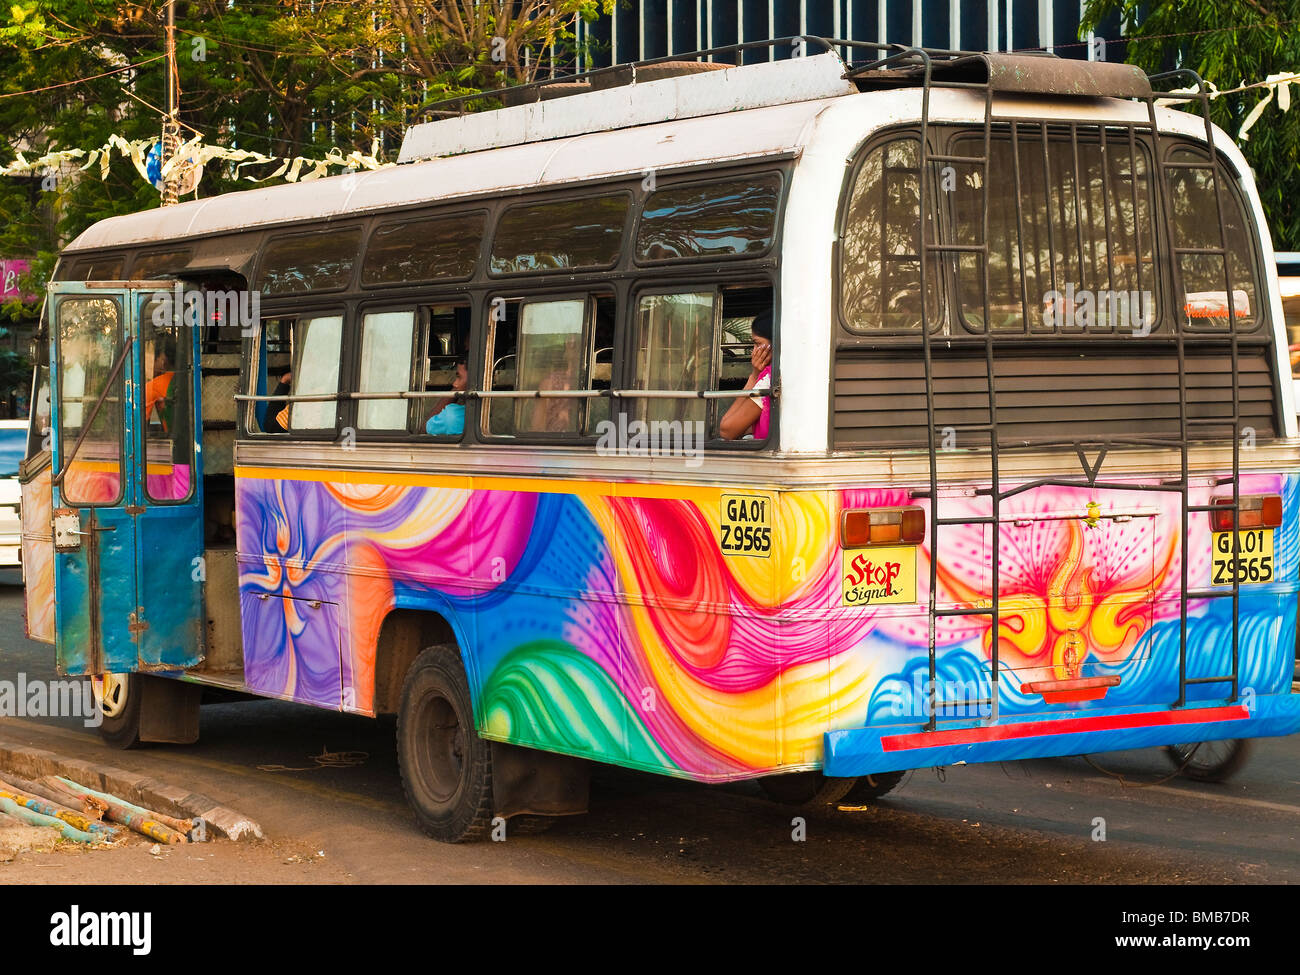 Colourful Indian Commuter Bus in Panaji, Goa, India - Stock Image